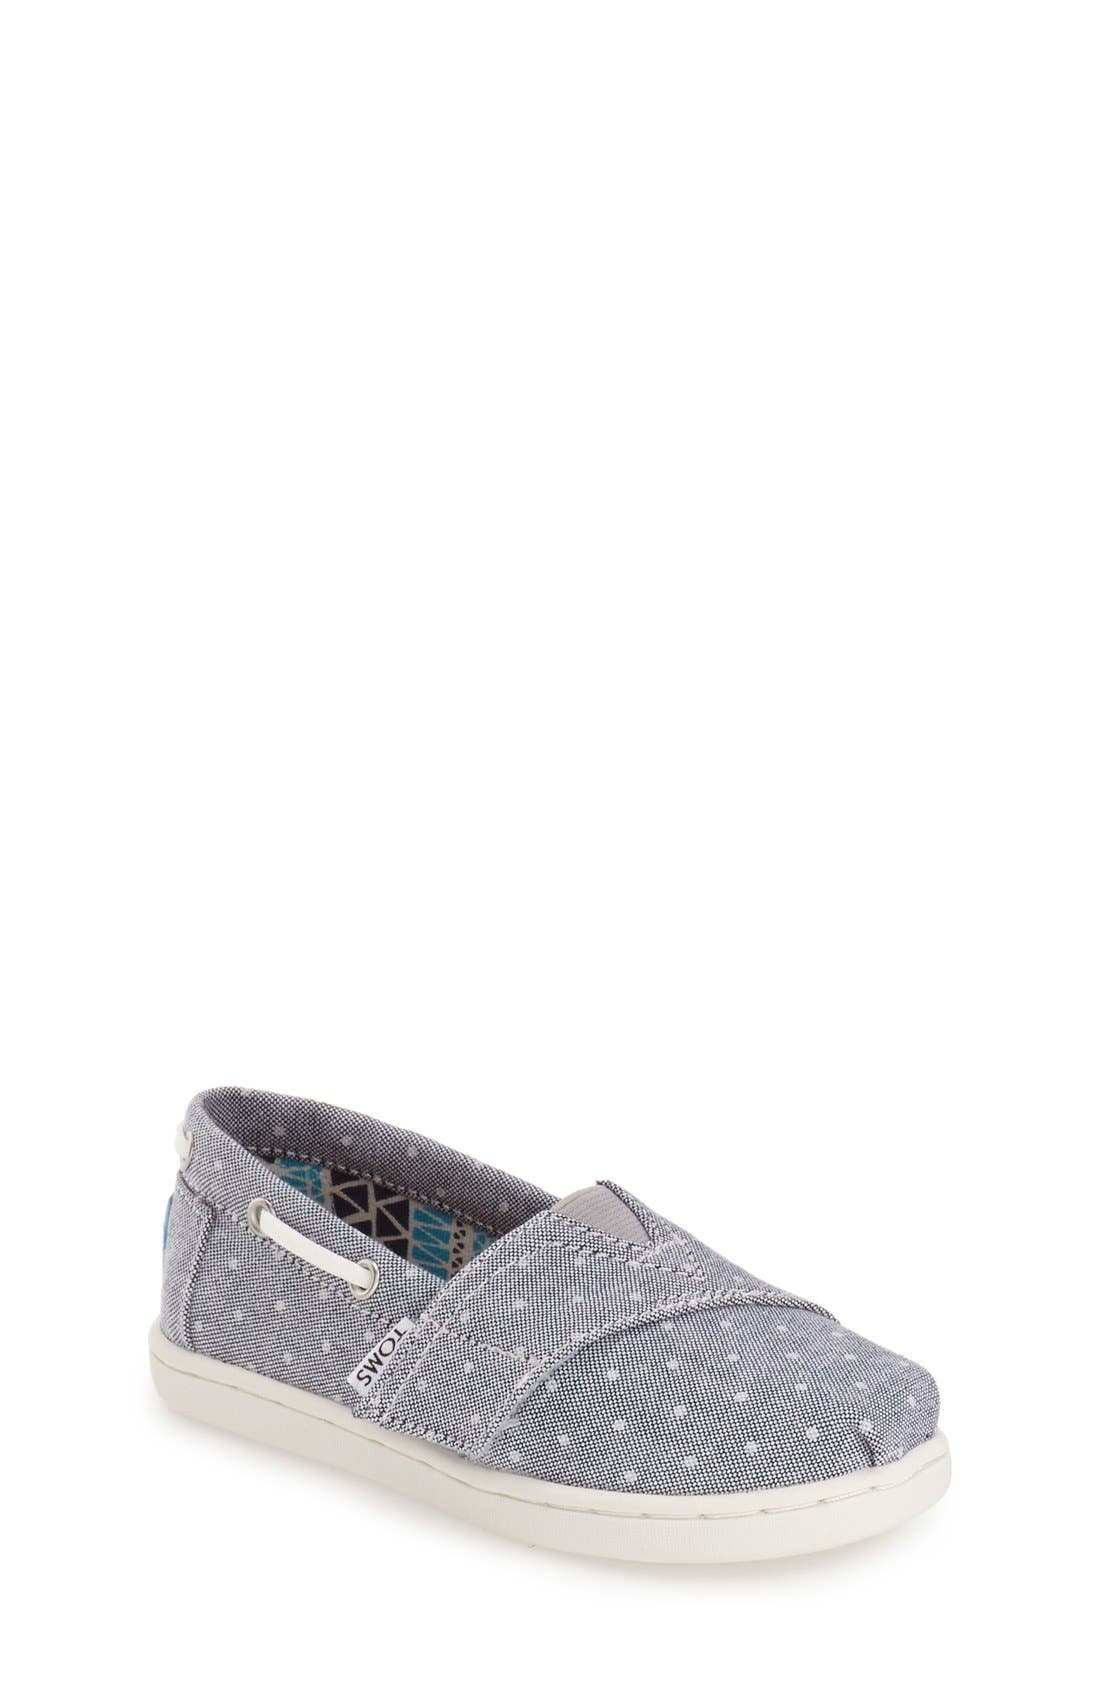 'Bimini - Tiny' Slip-On,                         Main,                         color, Grey